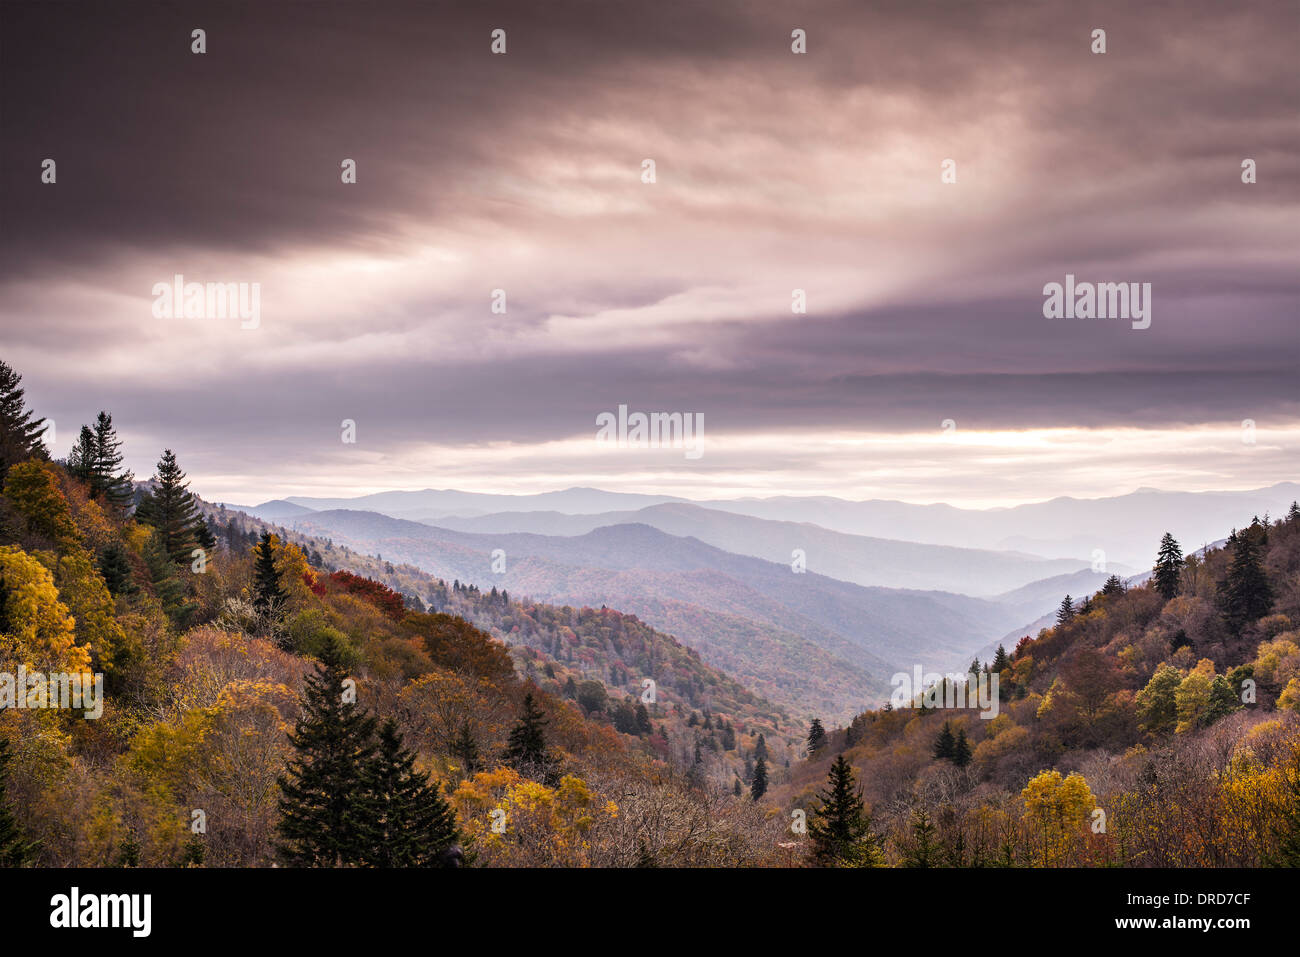 Smoky Mountains National Park in un nebbioso mattino d'autunno. Immagini Stock